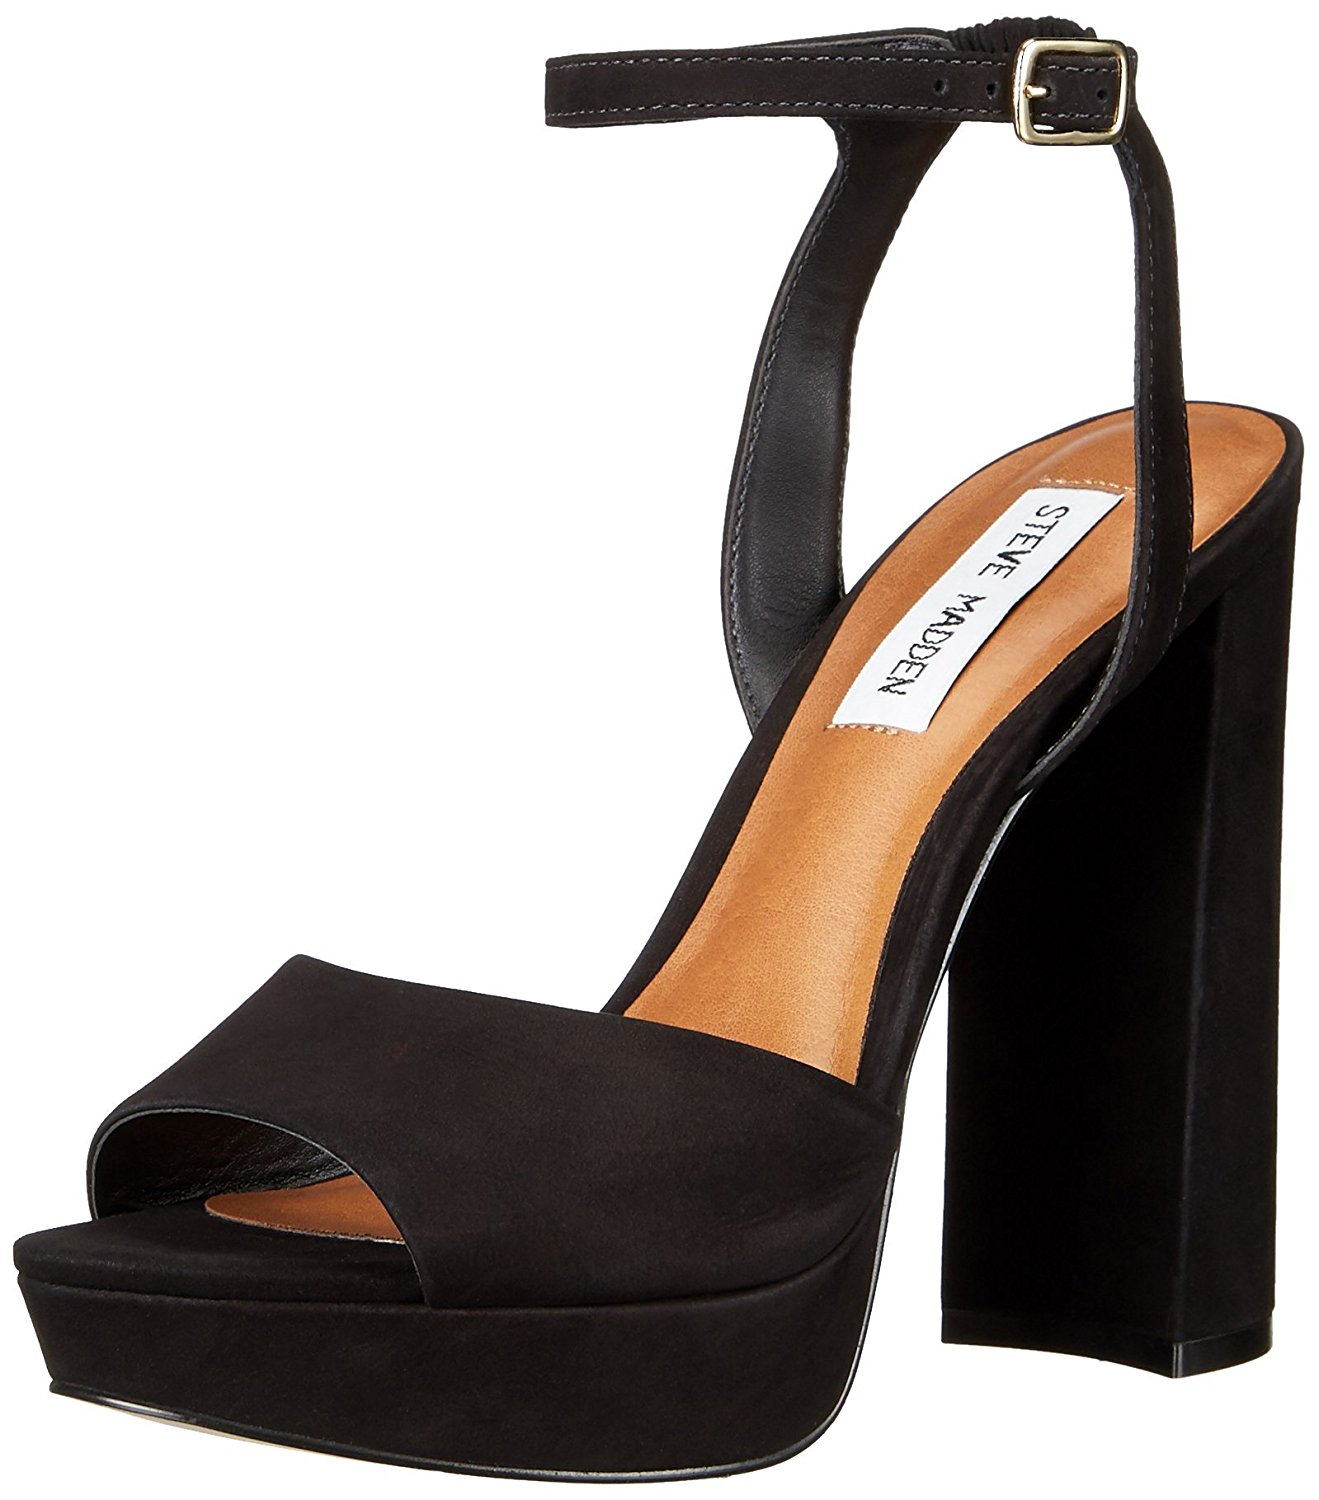 0e663a9b369 Steve Madden Brrit Womens Platform Sandals Black Nubuck 8 US   6 UK ...